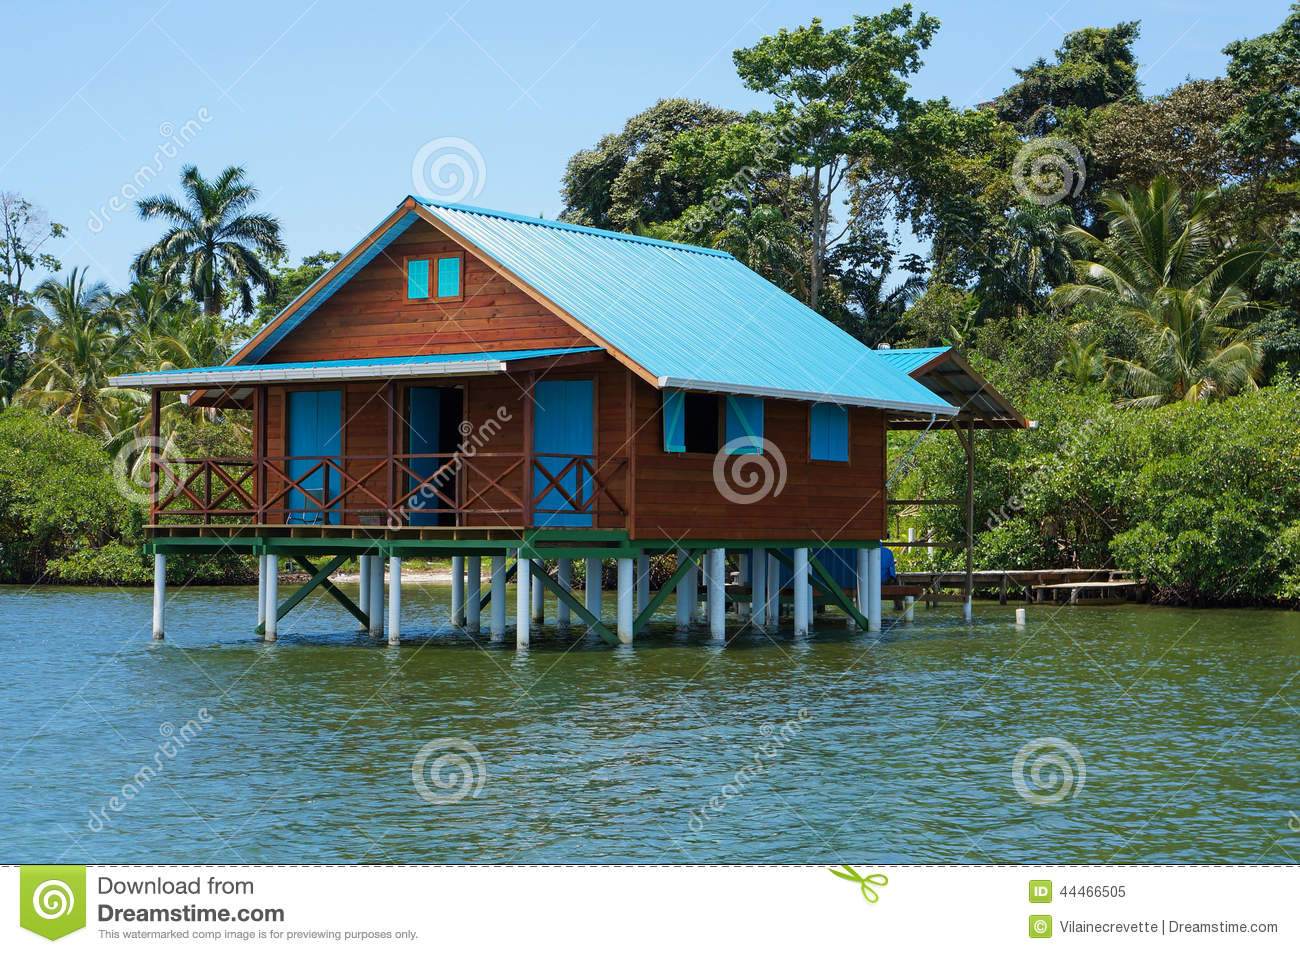 Bungalow on stilts over water of the caribbean sea stock for Bungalows sobre el agua en mexico